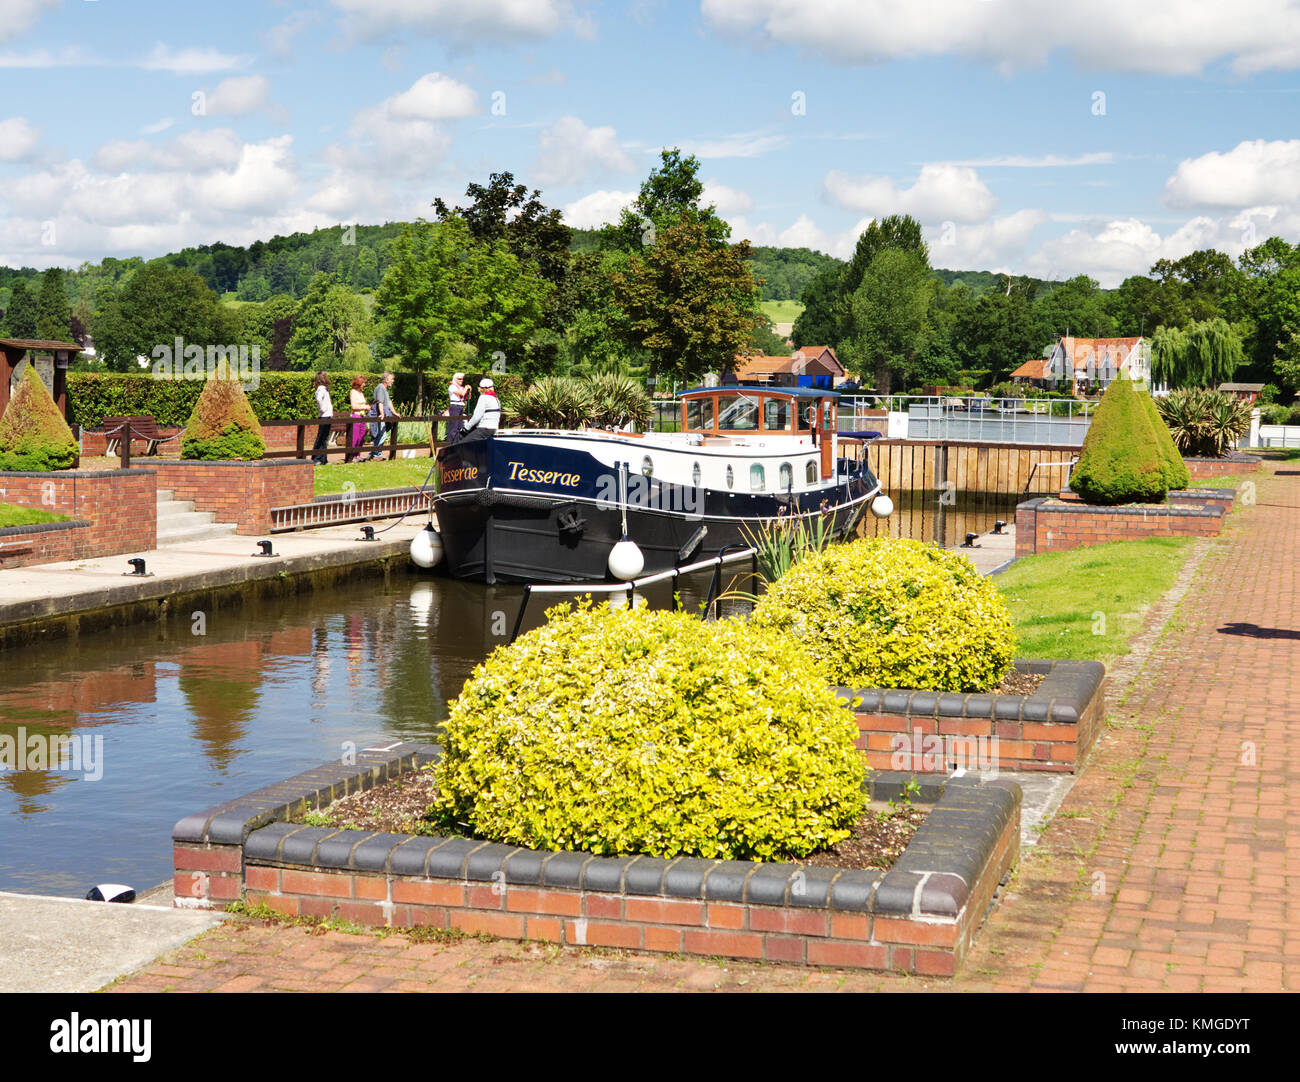 Hambleden Lock on the River Thames with narrowboat waiting to pass through - Stock Image